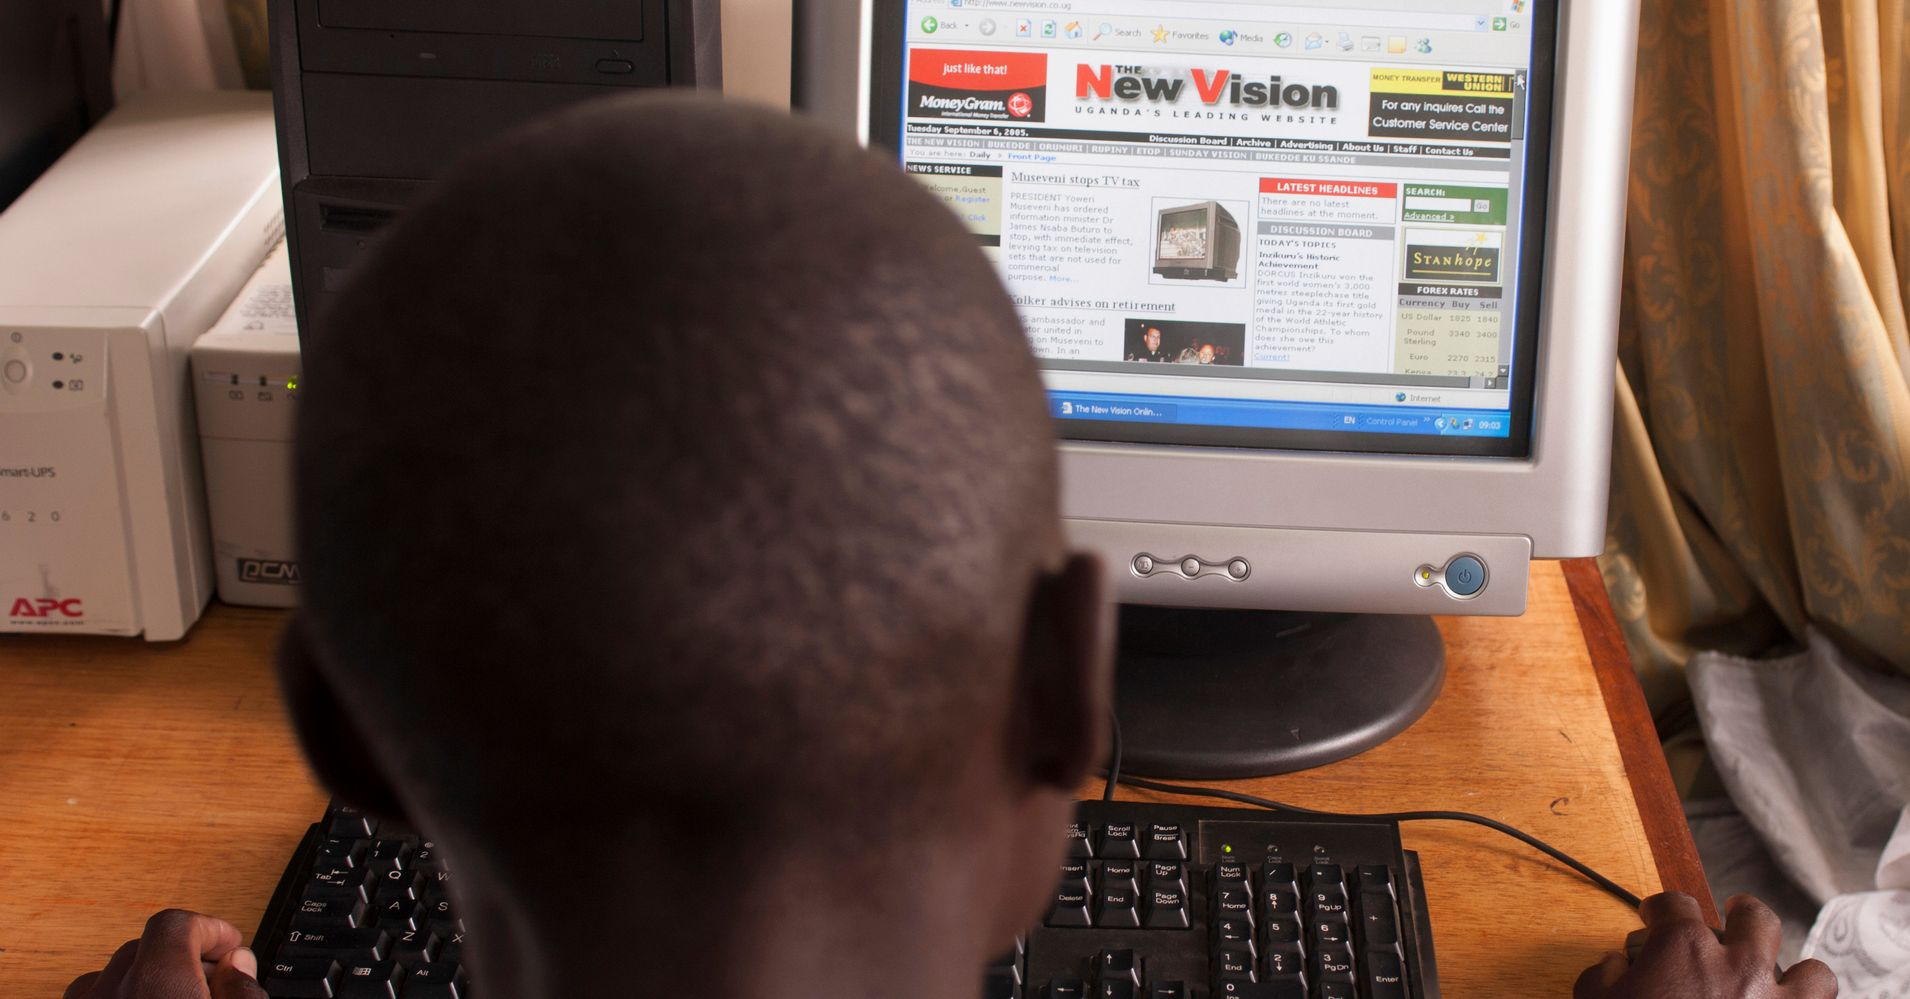 Uganda Buys A 'Pornography Detection Machine' To Catch Offenders, Official  Says | HuffPost